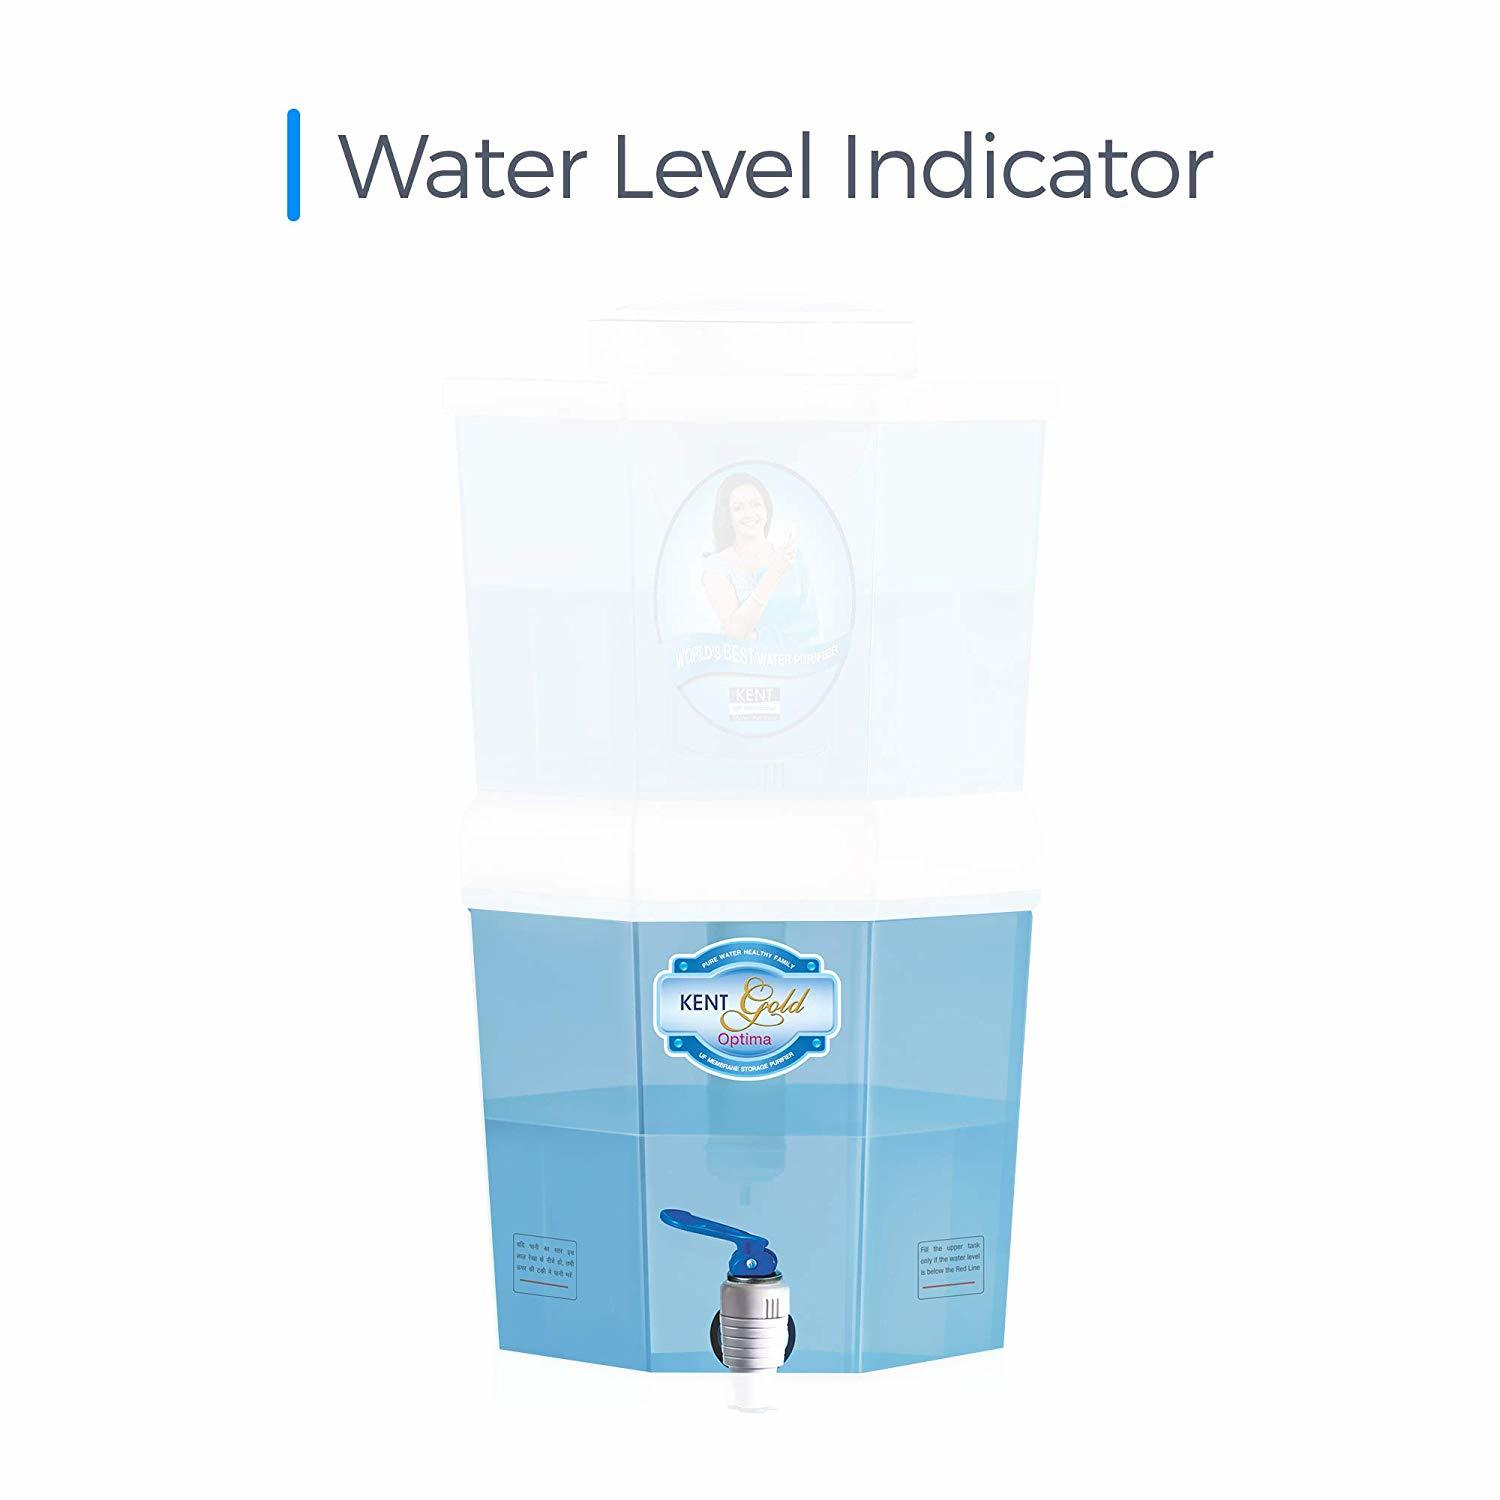 KENT Gold Optima 10-Litres Gravity Based Non-electric Water Purifier (Aqua Blue/White)